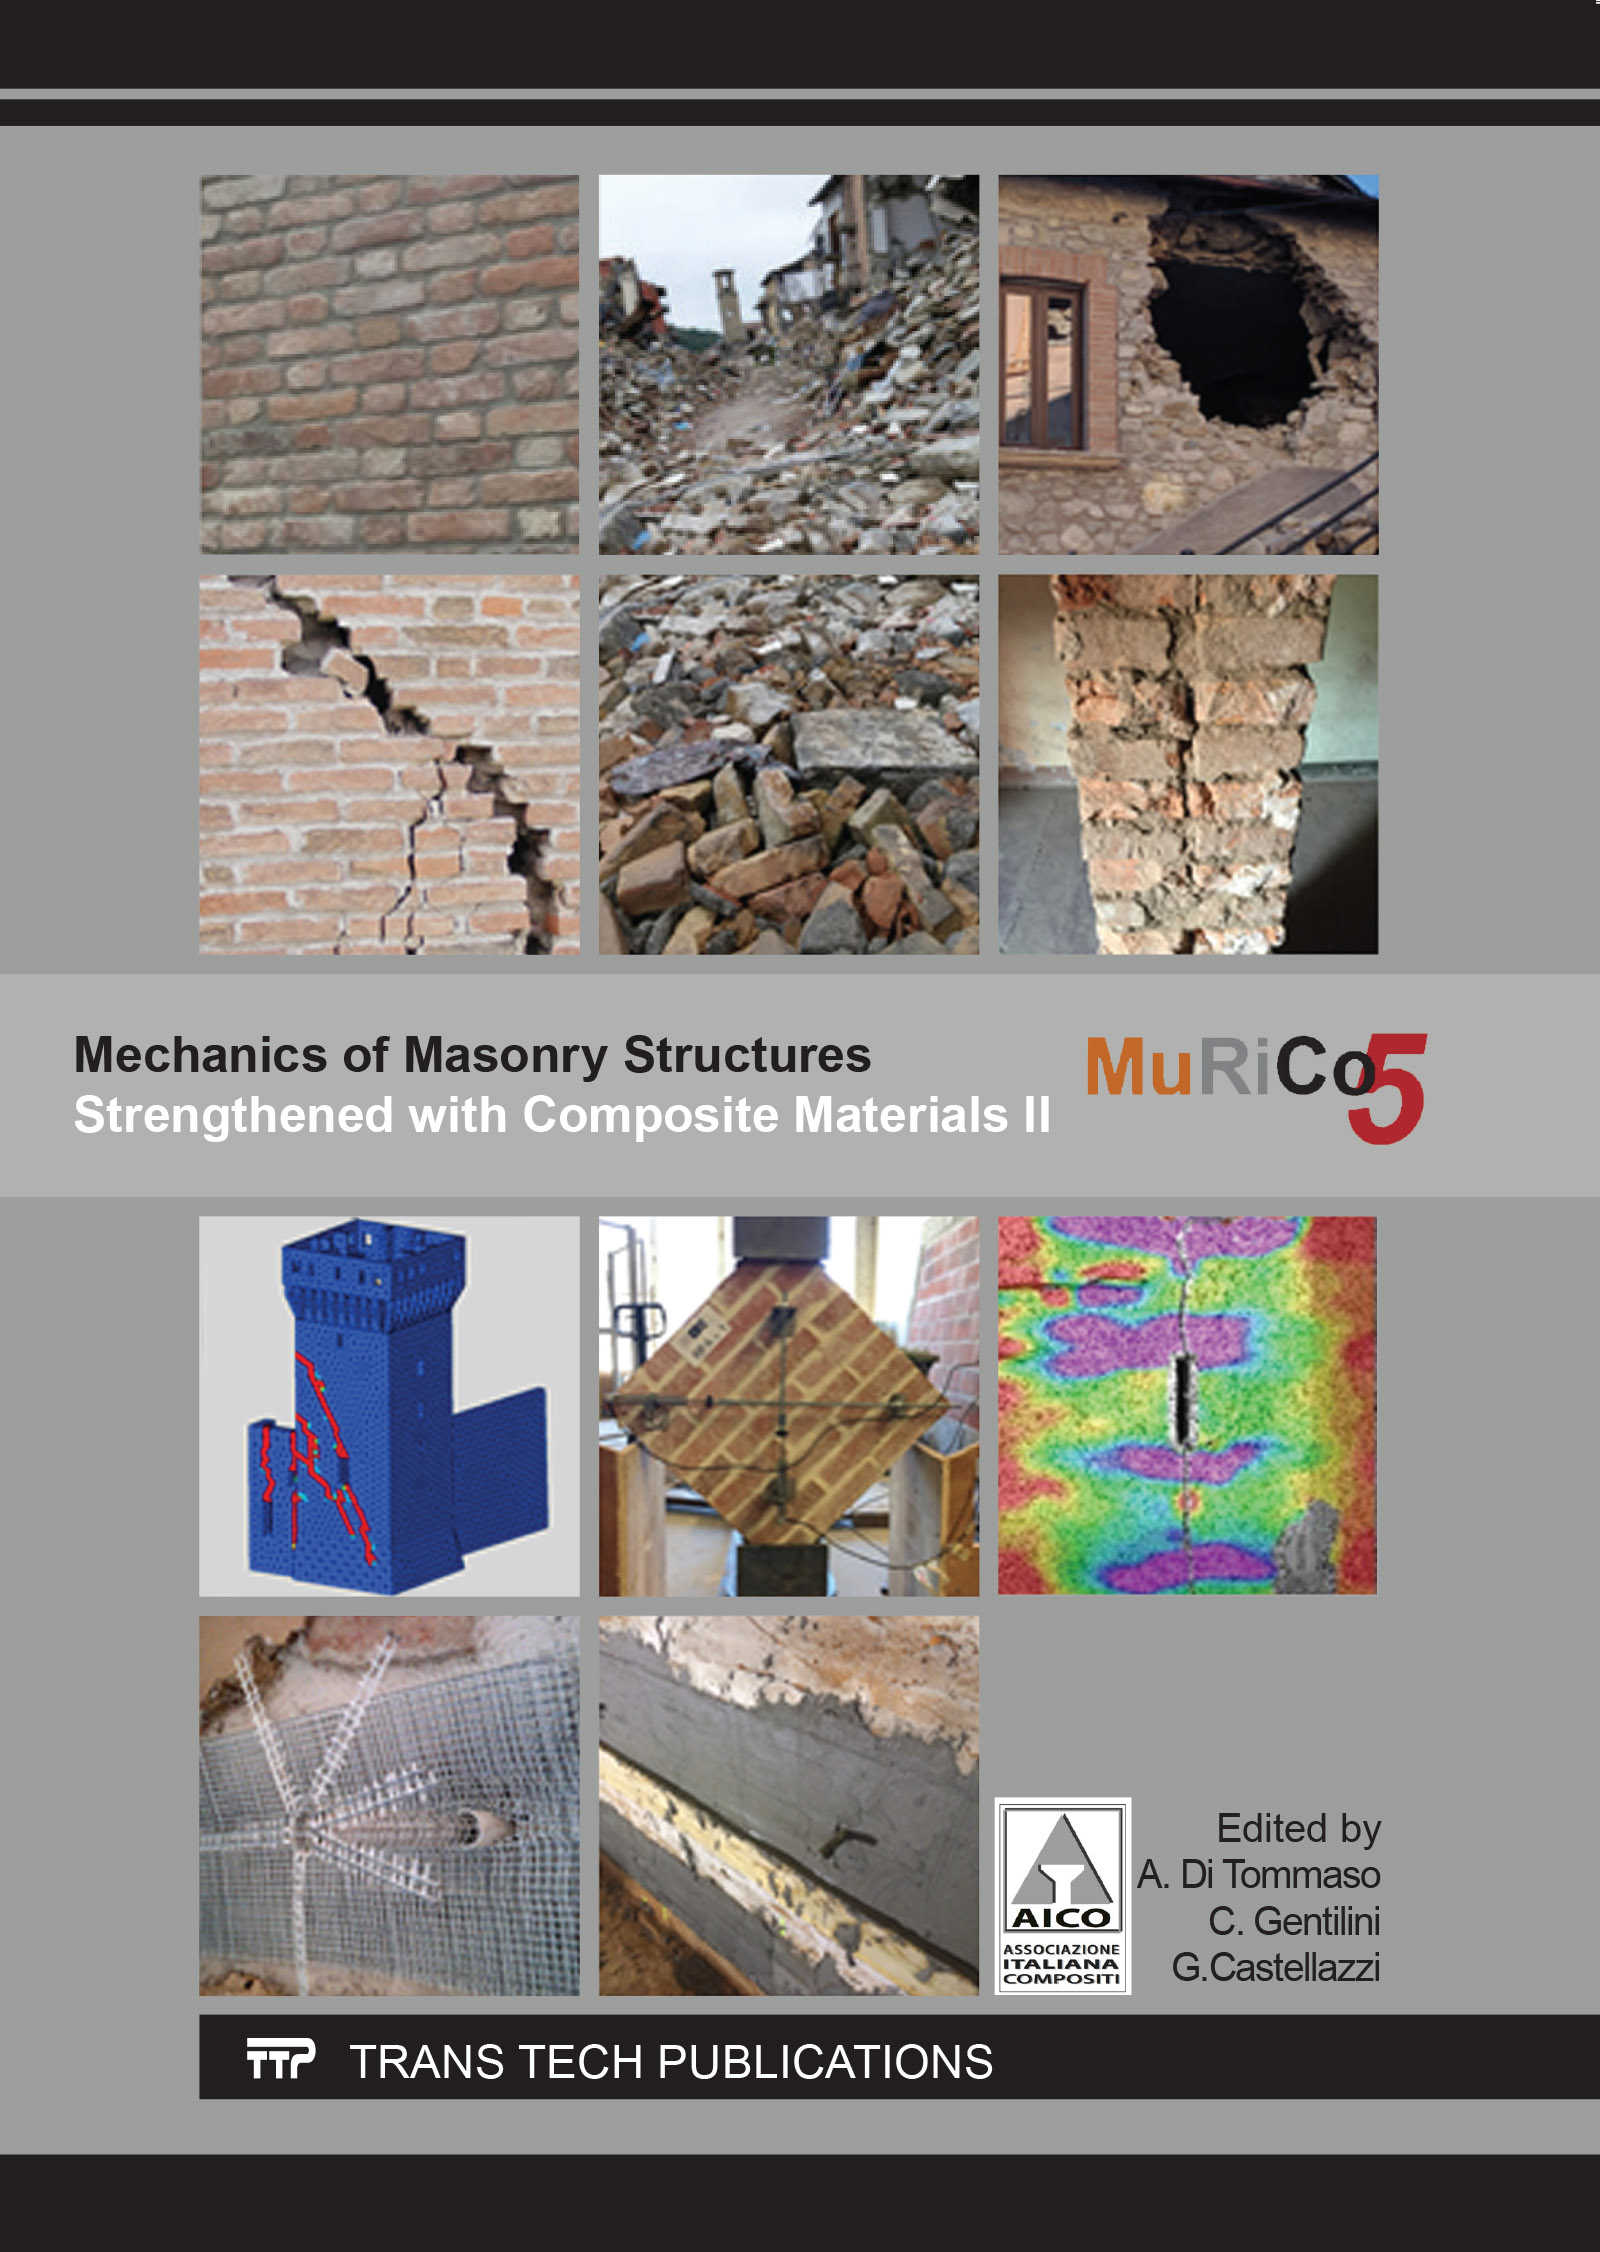 Mechanics of Masonry Structures Strengthened with Composite Materials II